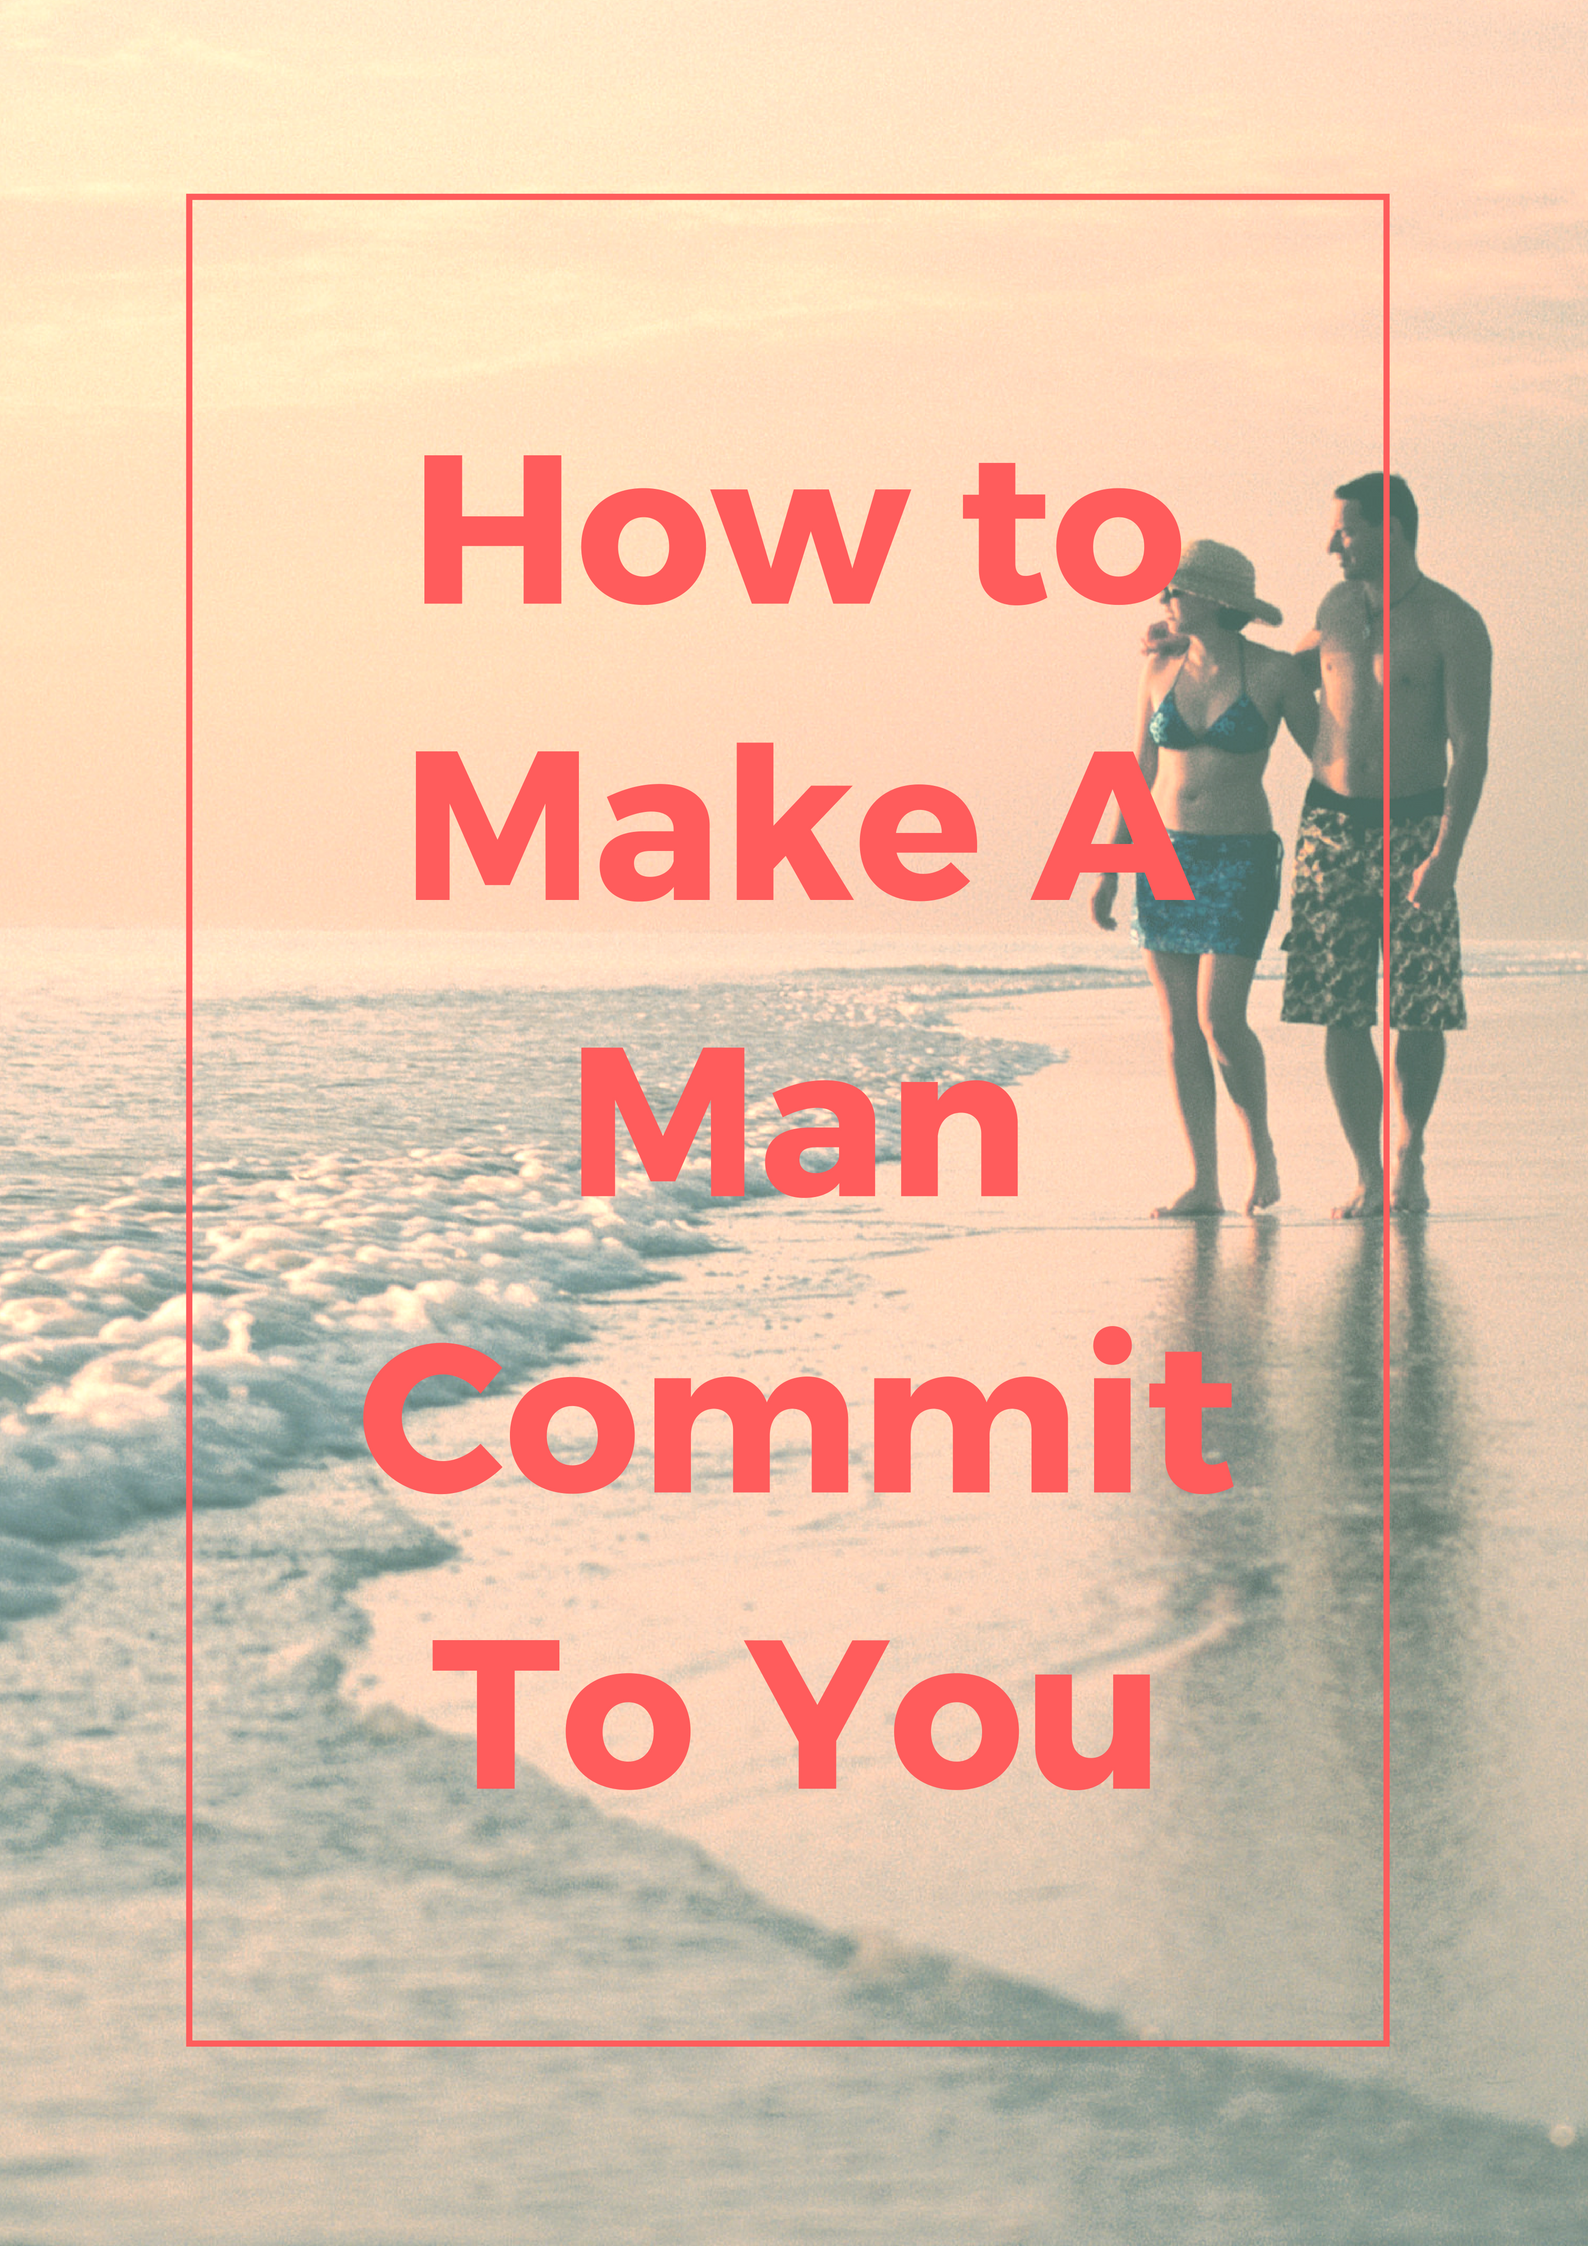 What makes a man commit to you